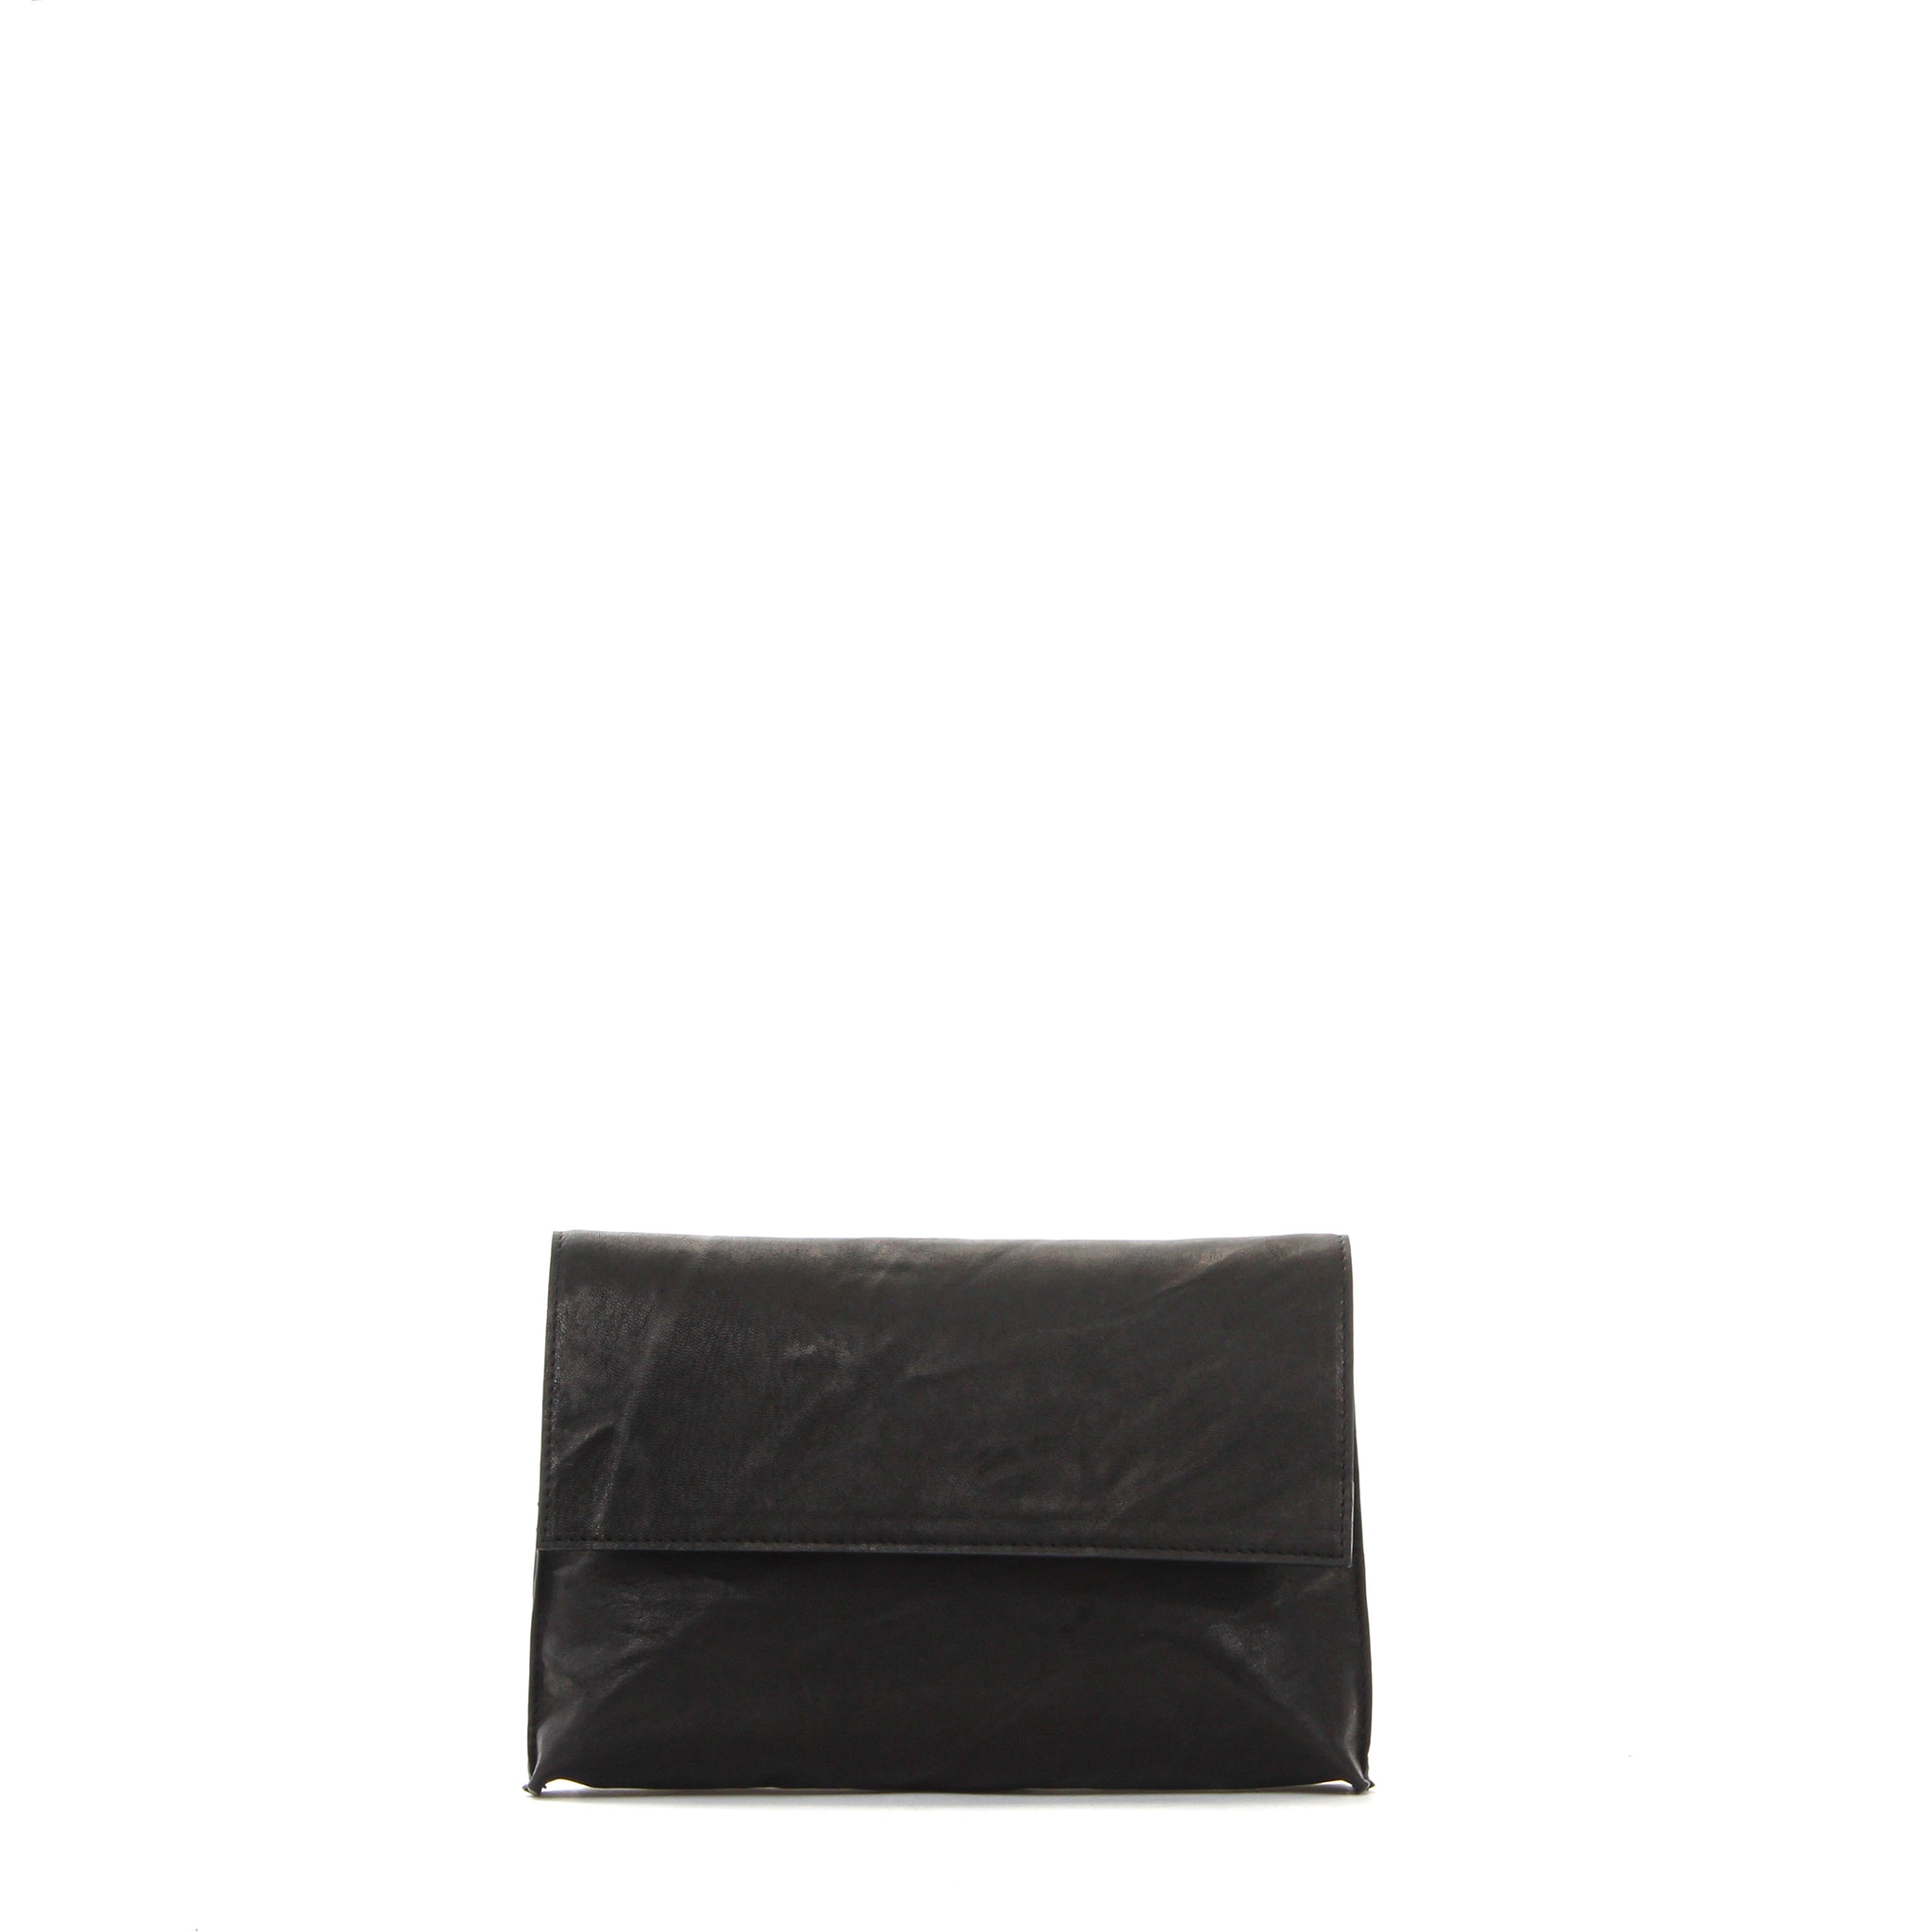 LARGE FOLDOVER CLUTCH BASALT RUMPLED SHEEPSKIN